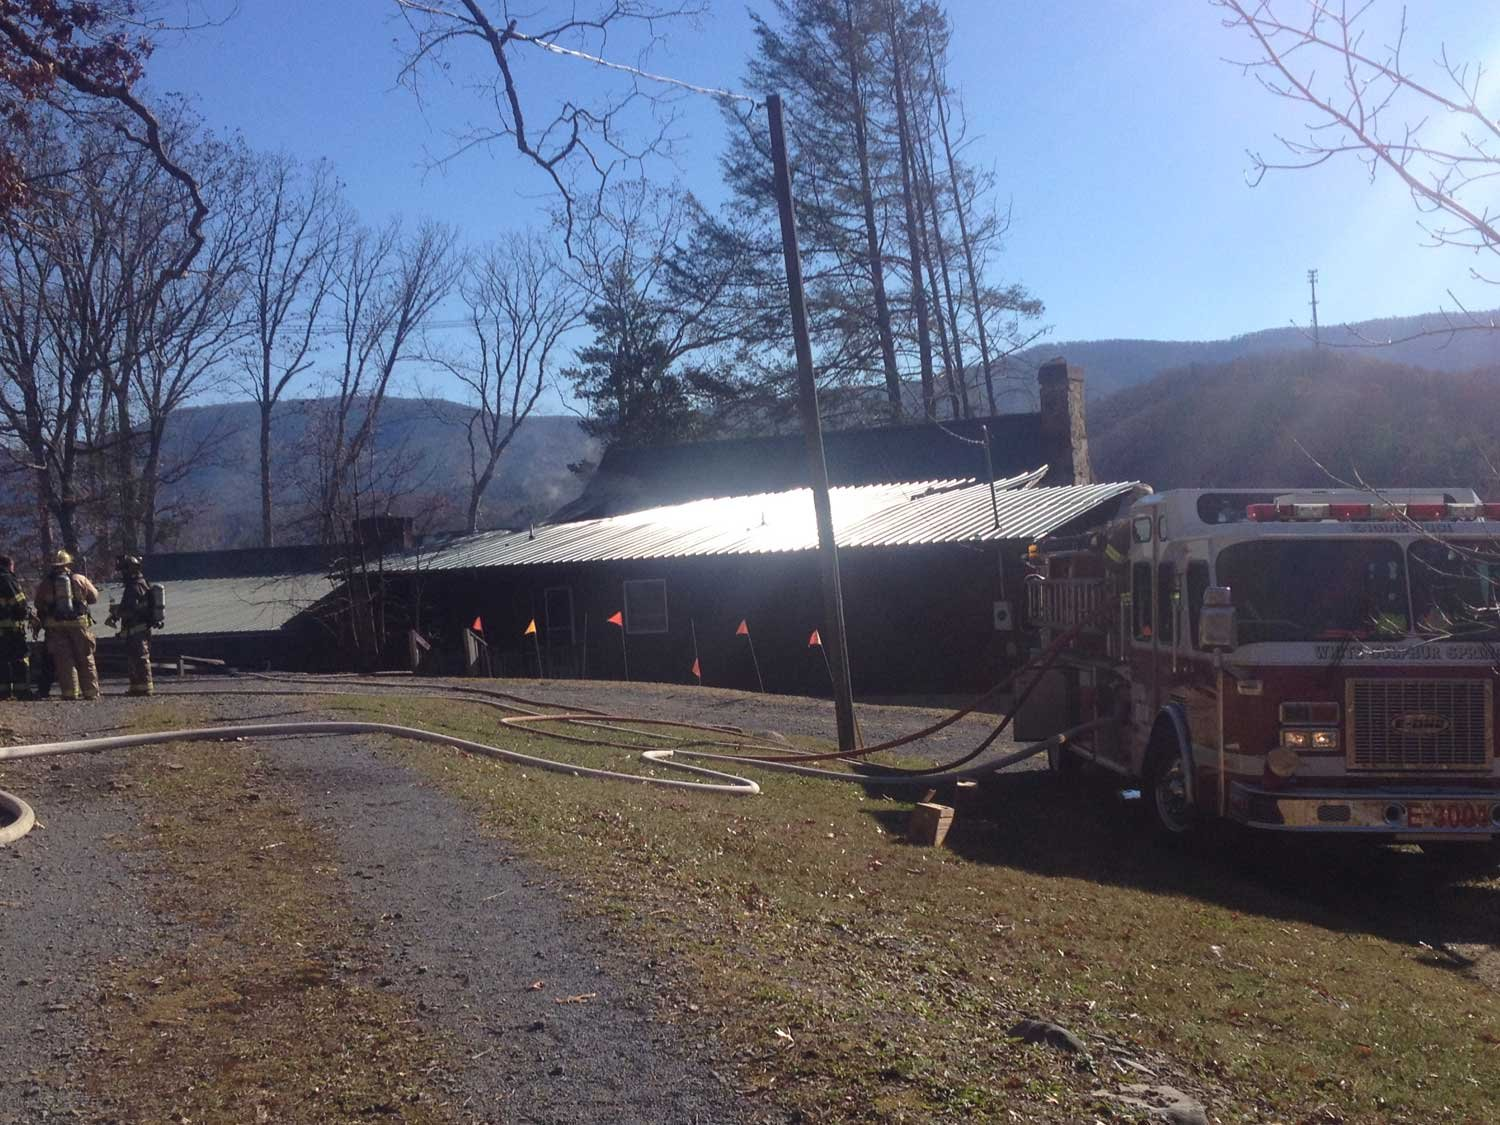 Route 60 reopened at around 12:30 p.m. A fire broke out at a house near Emmanuel Community Church in the Harts Run area of Greenbrier County